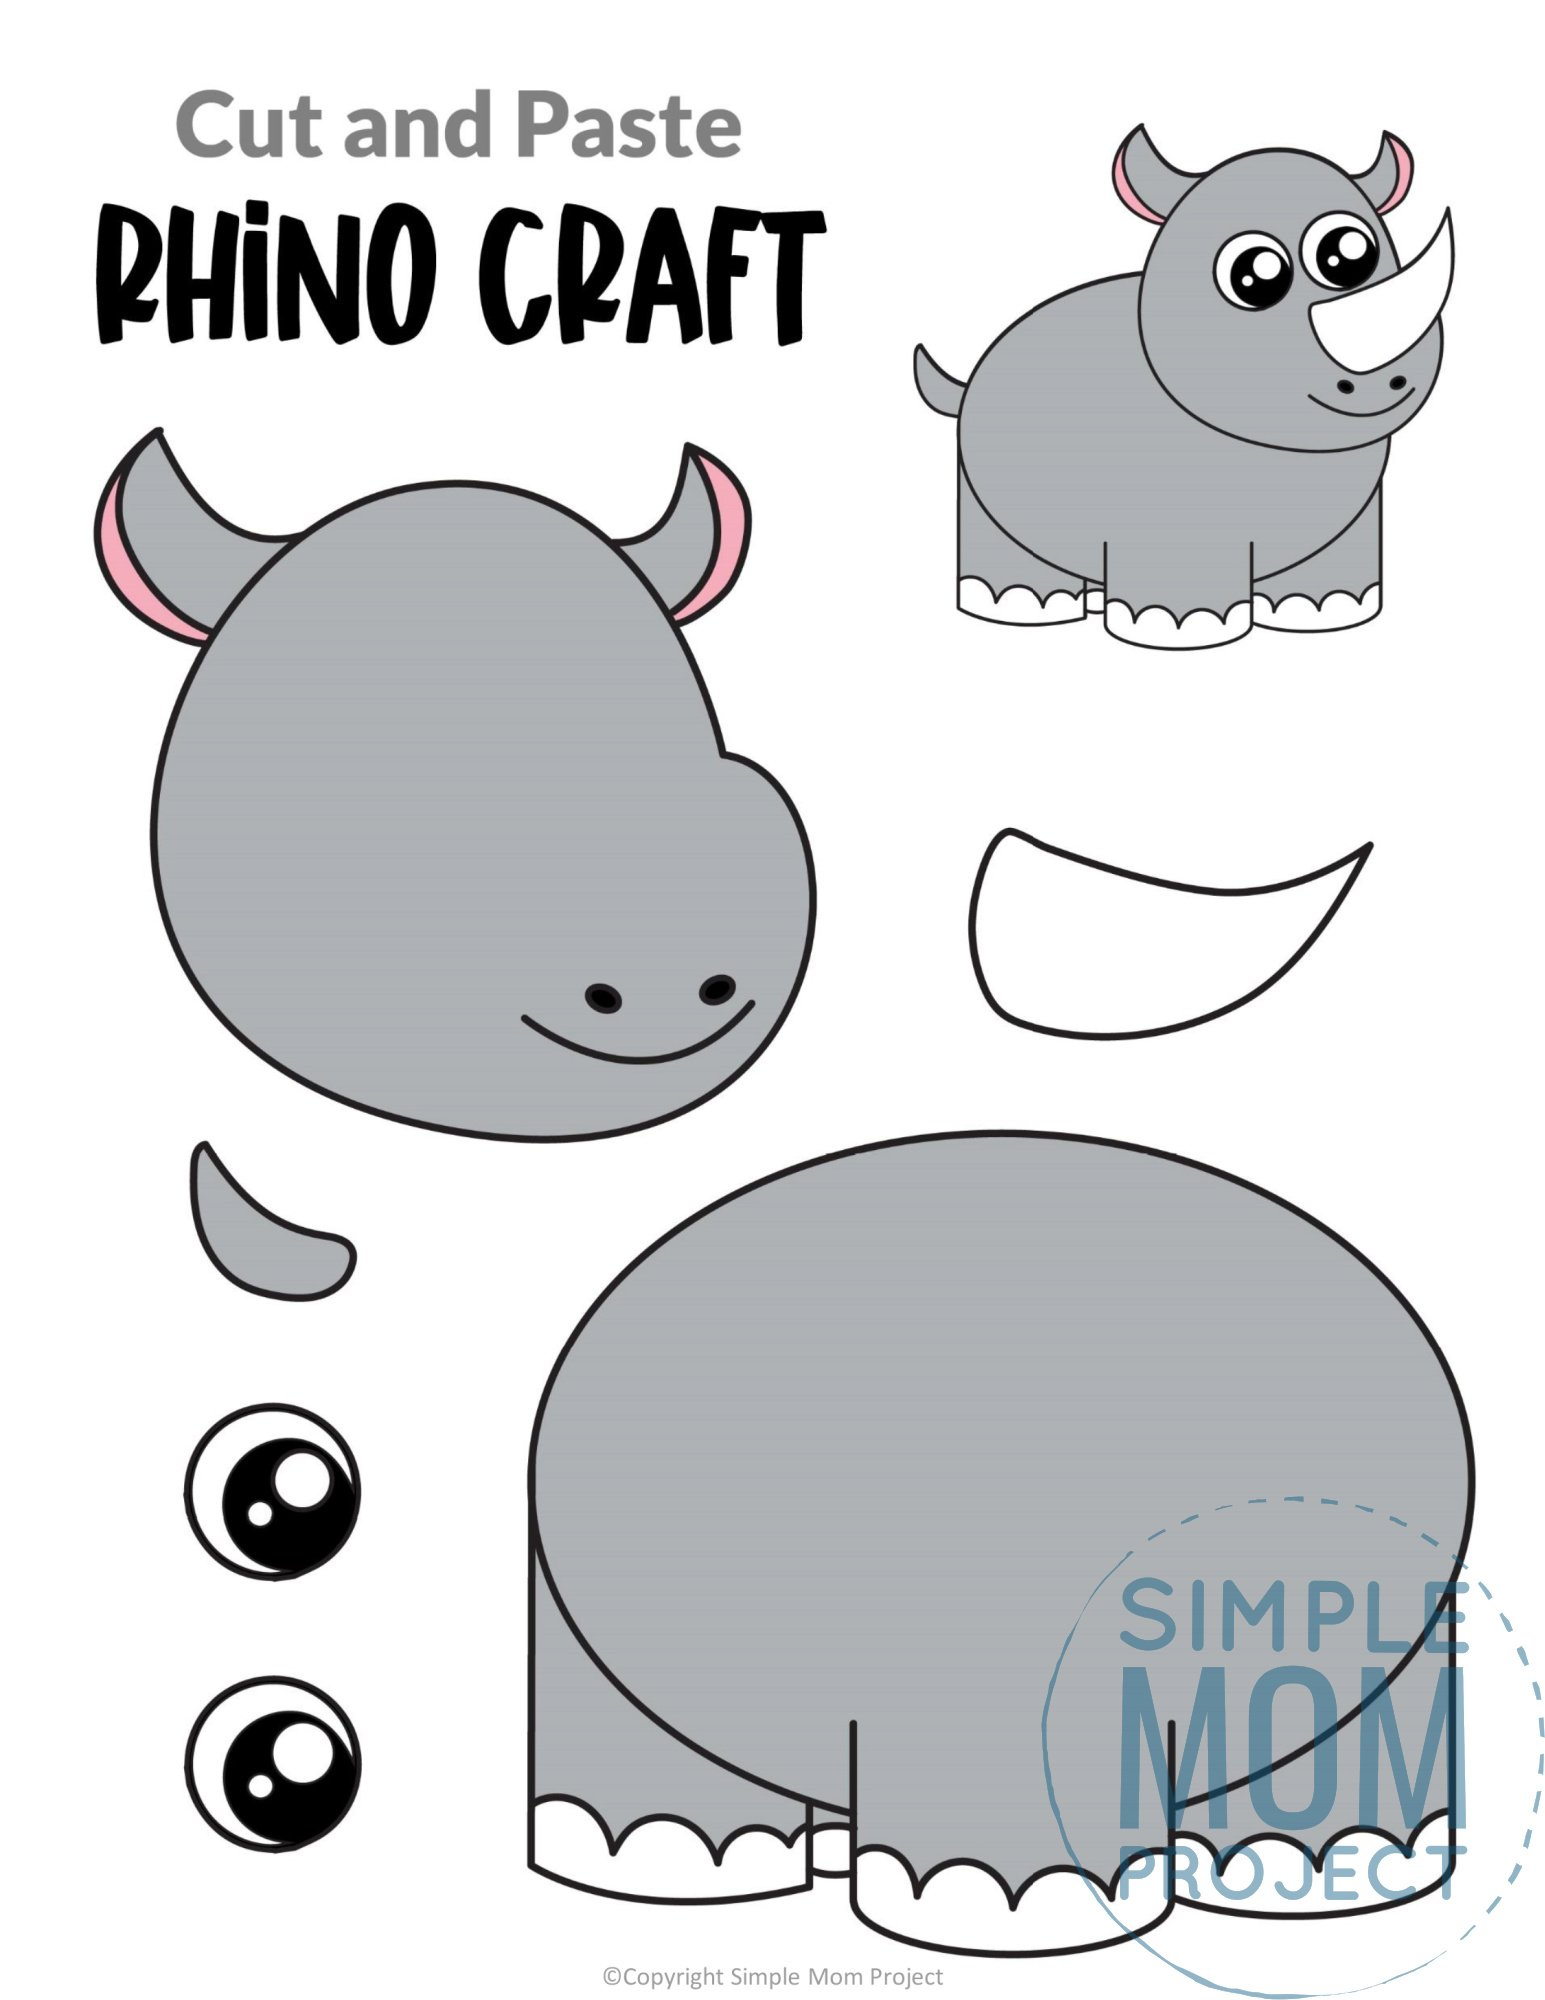 Rhino Cut and Paste Craft for Toddlers, Preschoolers and Kindergarteners